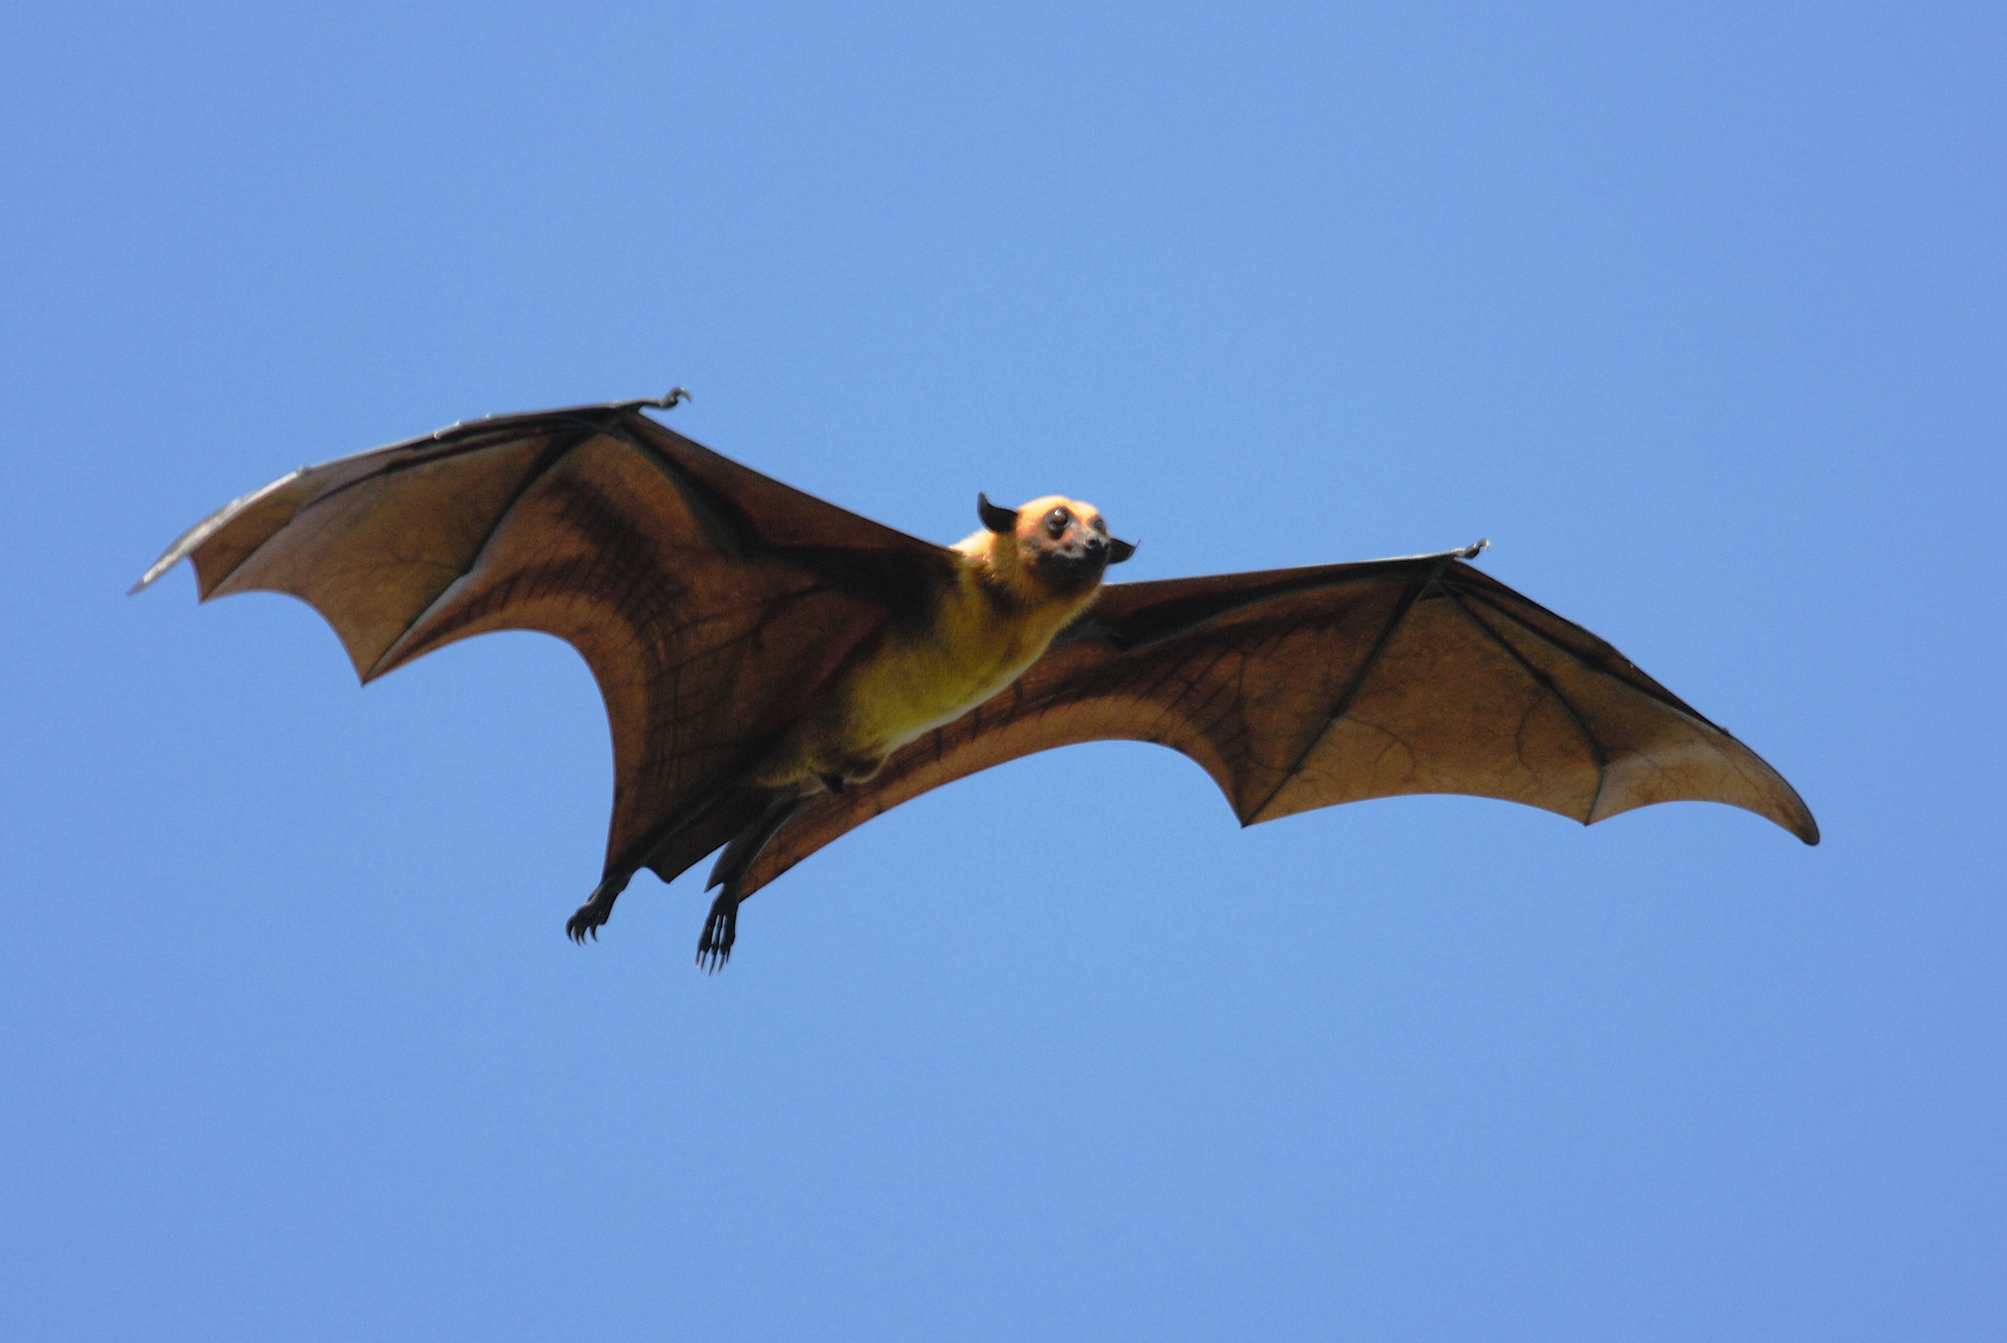 On many Pacific islands, hunting has dramatically reduced flying fox fruit bat populations, where their teeth are sometimes used as currency.